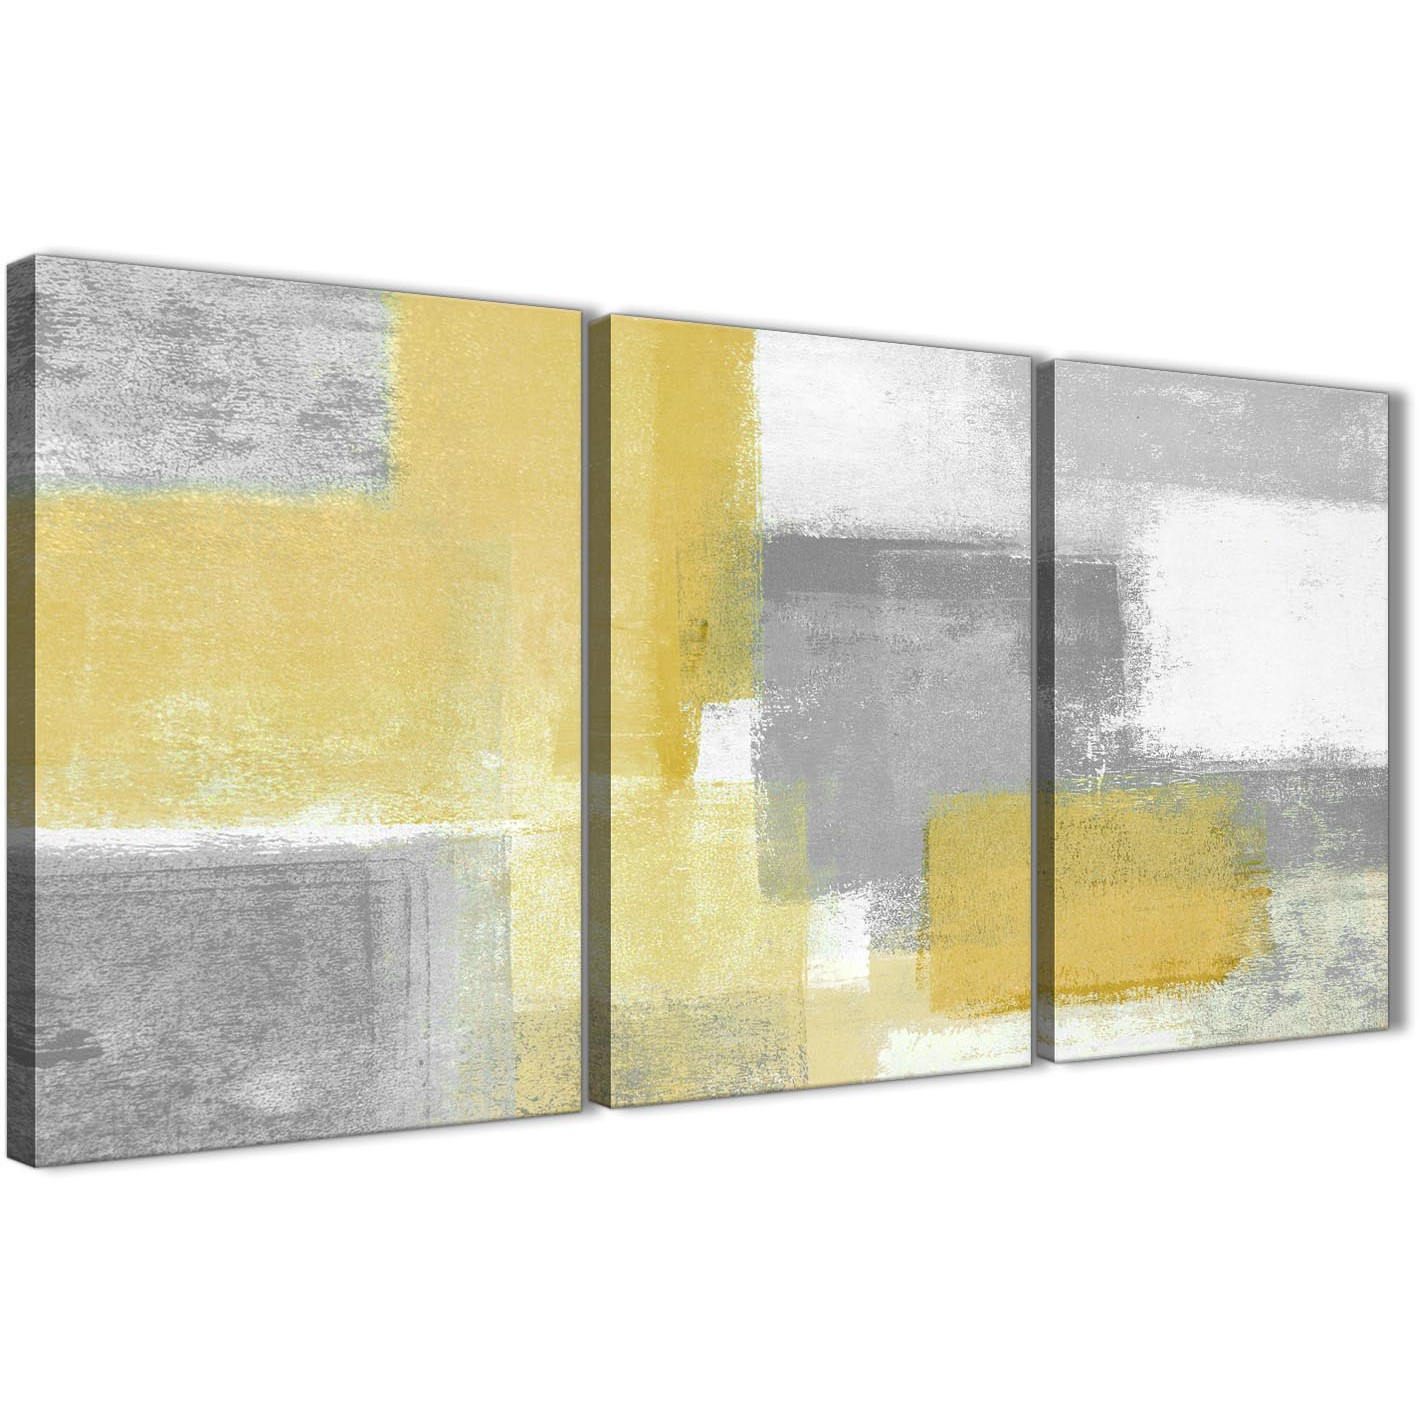 Luxury Wall Art Set Of 3 Motif - The Wall Art Decorations ...